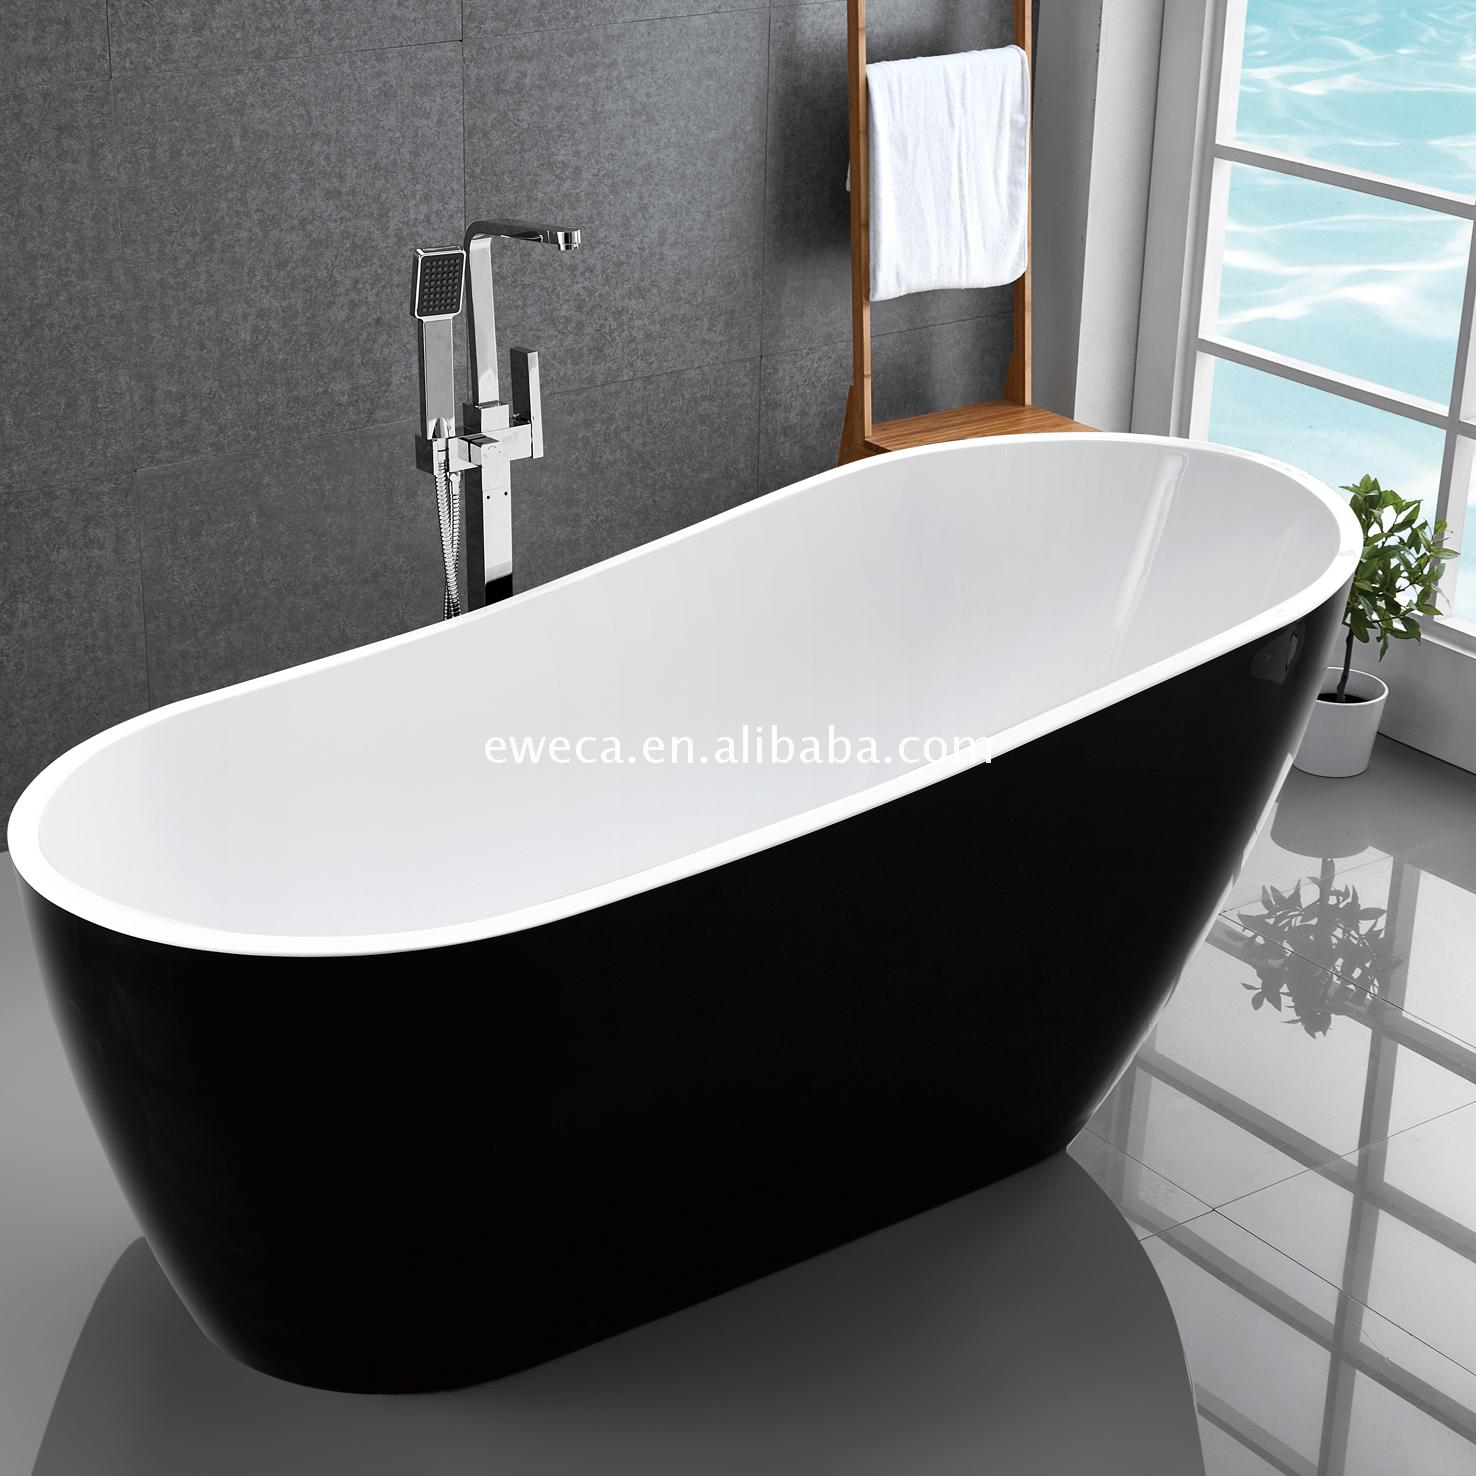 Cheap Copper Bathtub, Cheap Copper Bathtub Suppliers and ...